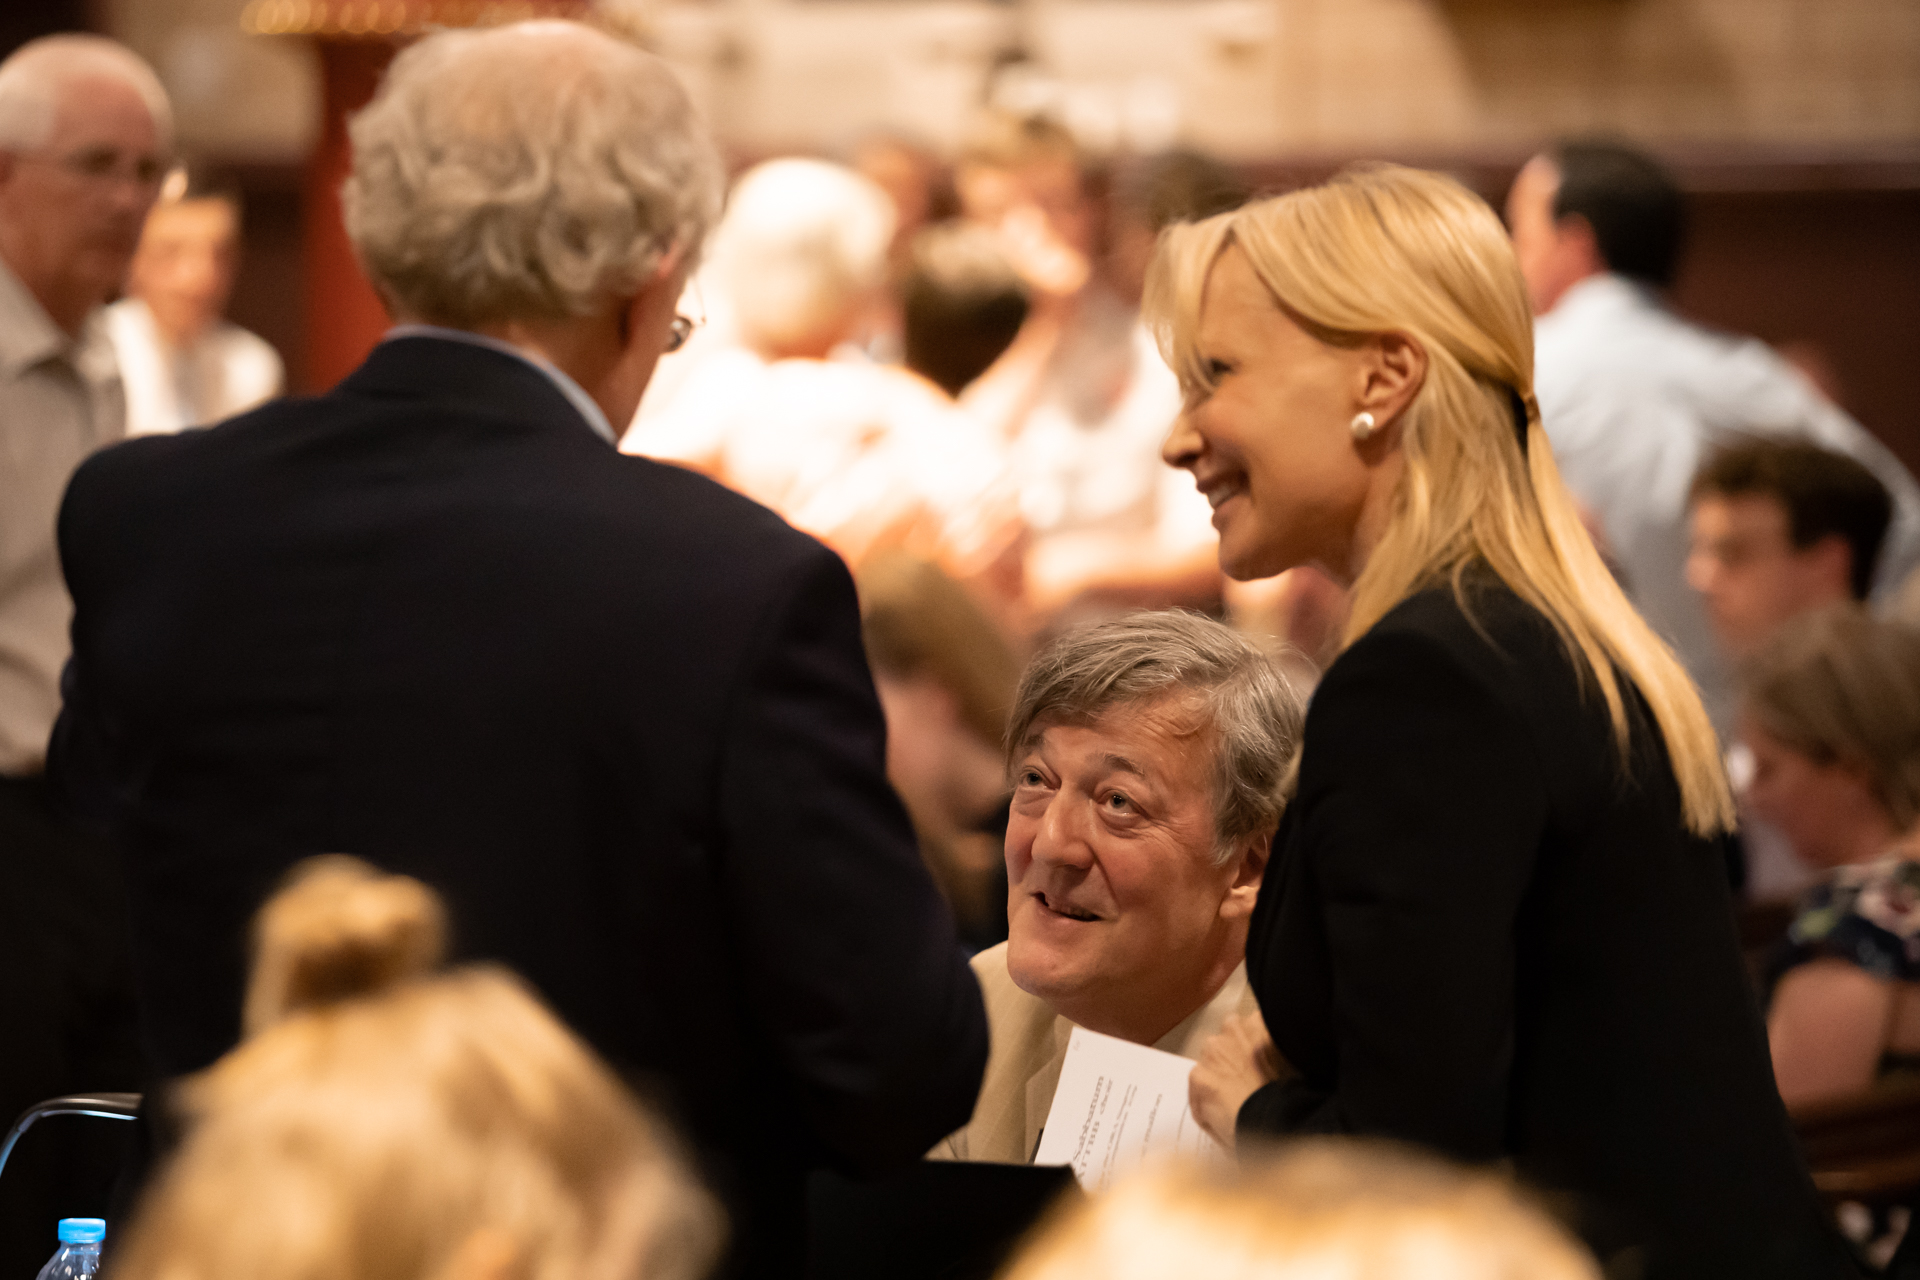 Suzi Digby (Artistic Director & Conductor), John Rutter (Panellists) and Stephen Fry (Chairman of the Panel). Photo: Nick Rutter